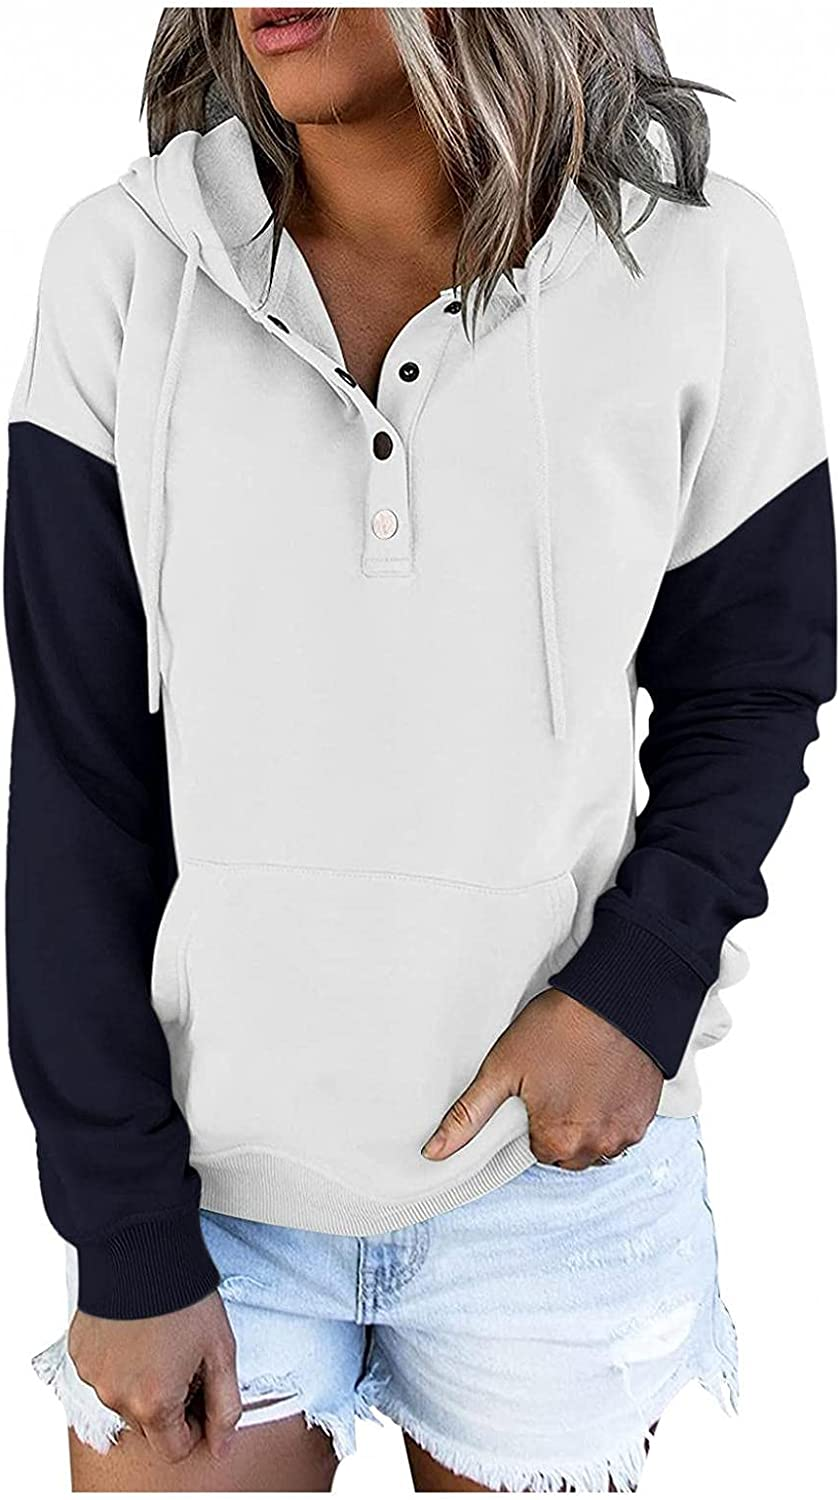 Kaitobe Hoodies for Women Button Down Hooded Pullover Shirts Casual Long Sleeve Drawstring Sweatshirts Tops with Pocket